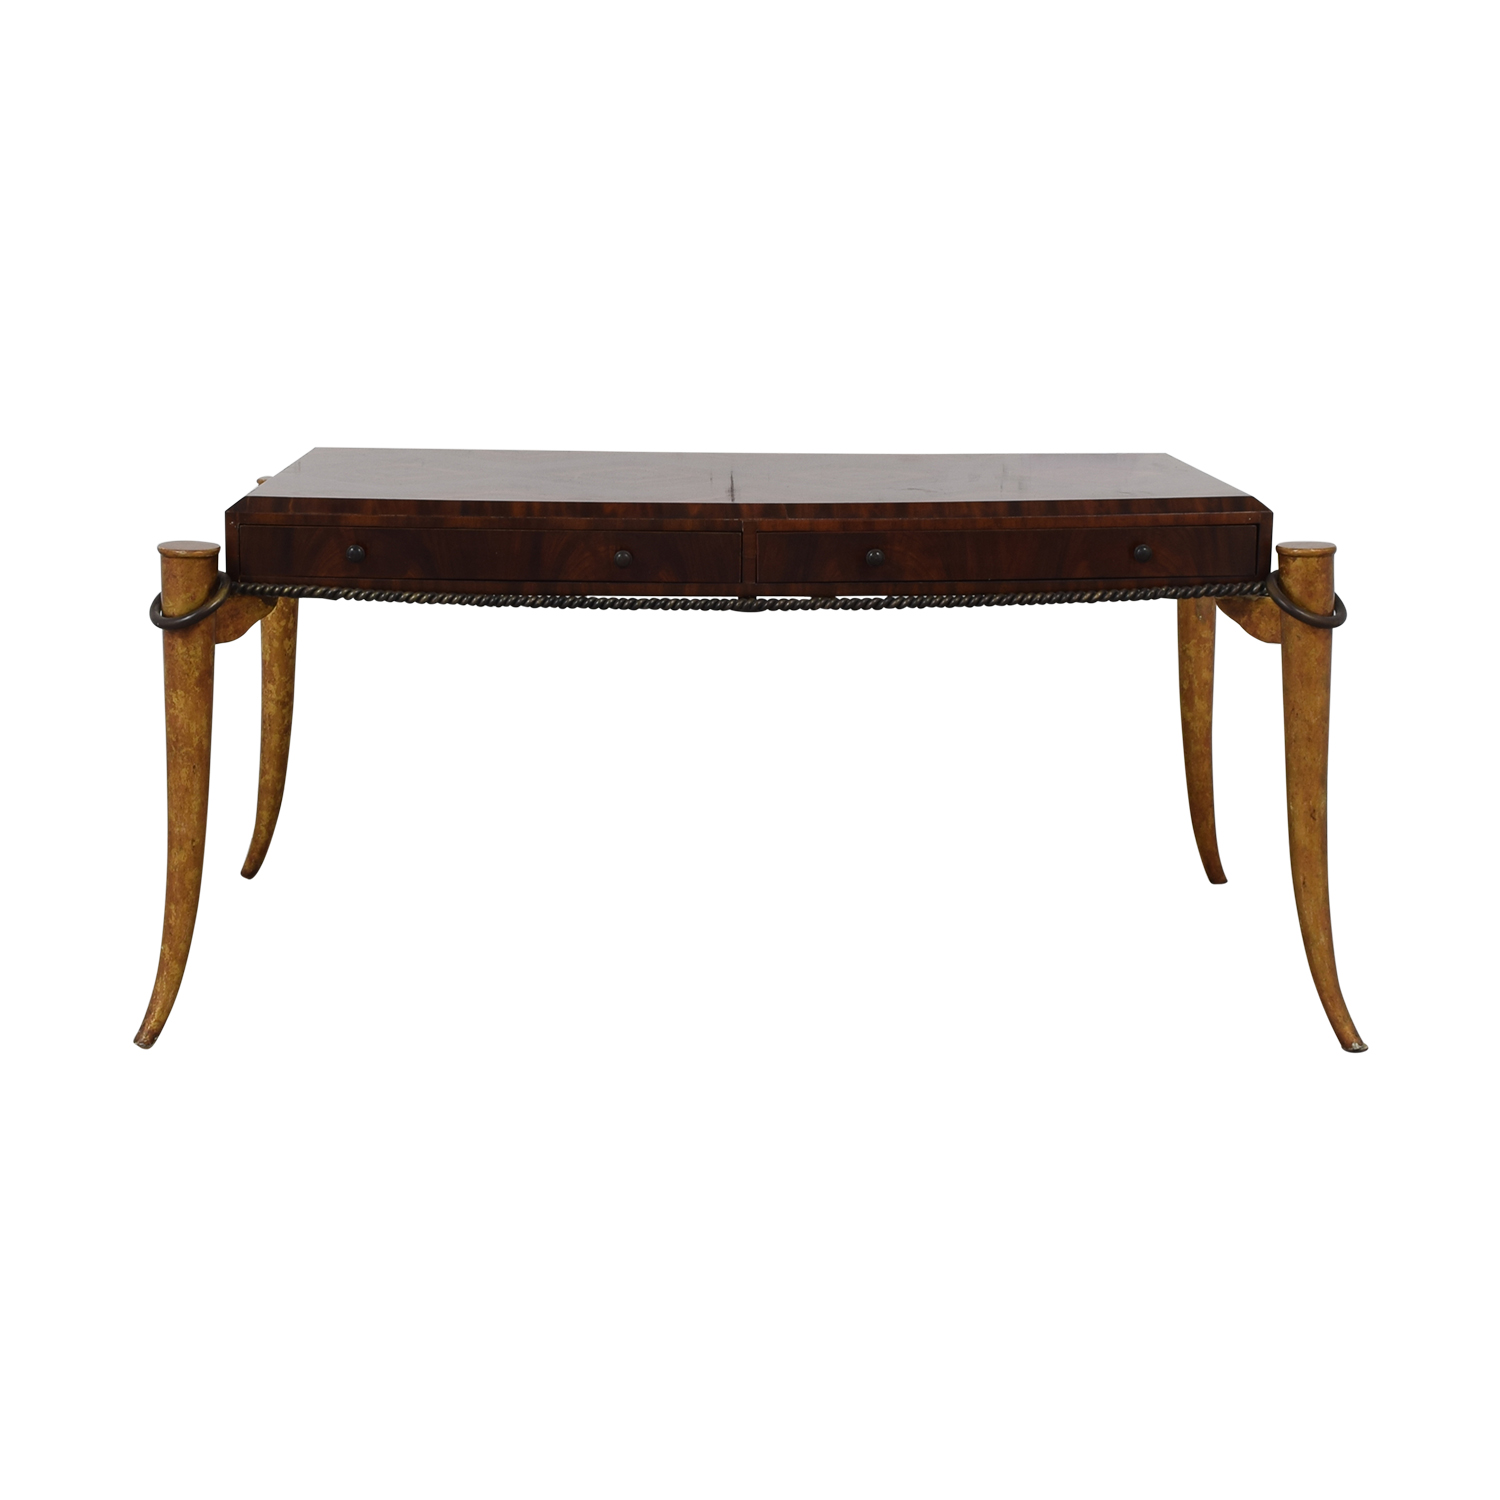 Maitland-Smith Maitland-Smith Rosewood Inlaid Desk coupon